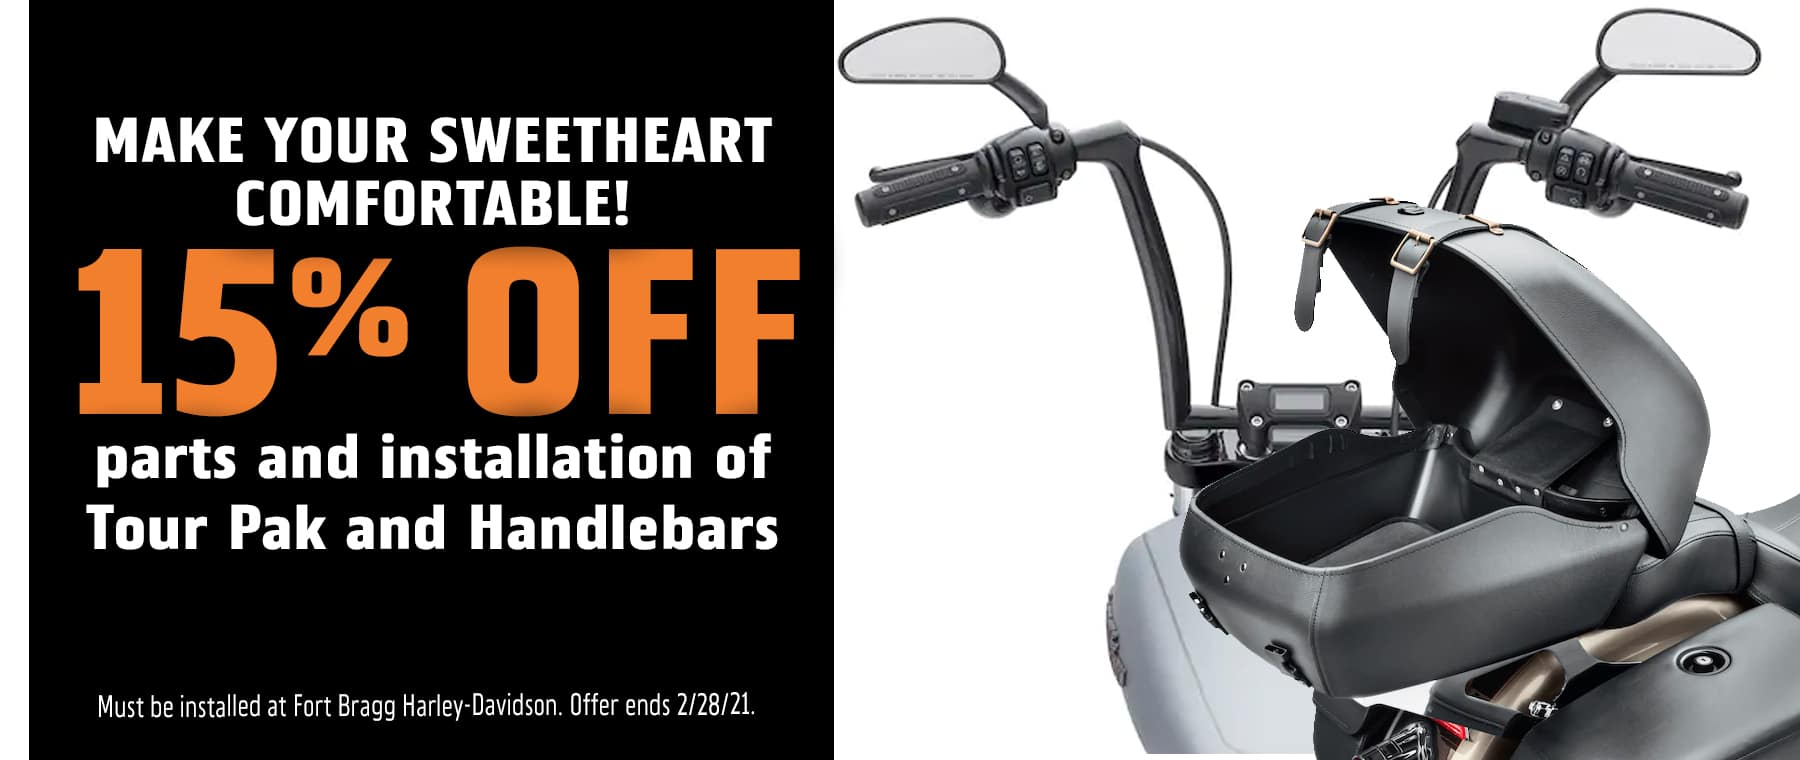 15% OFF Parts and Installation of Tour Pak and Handlebars